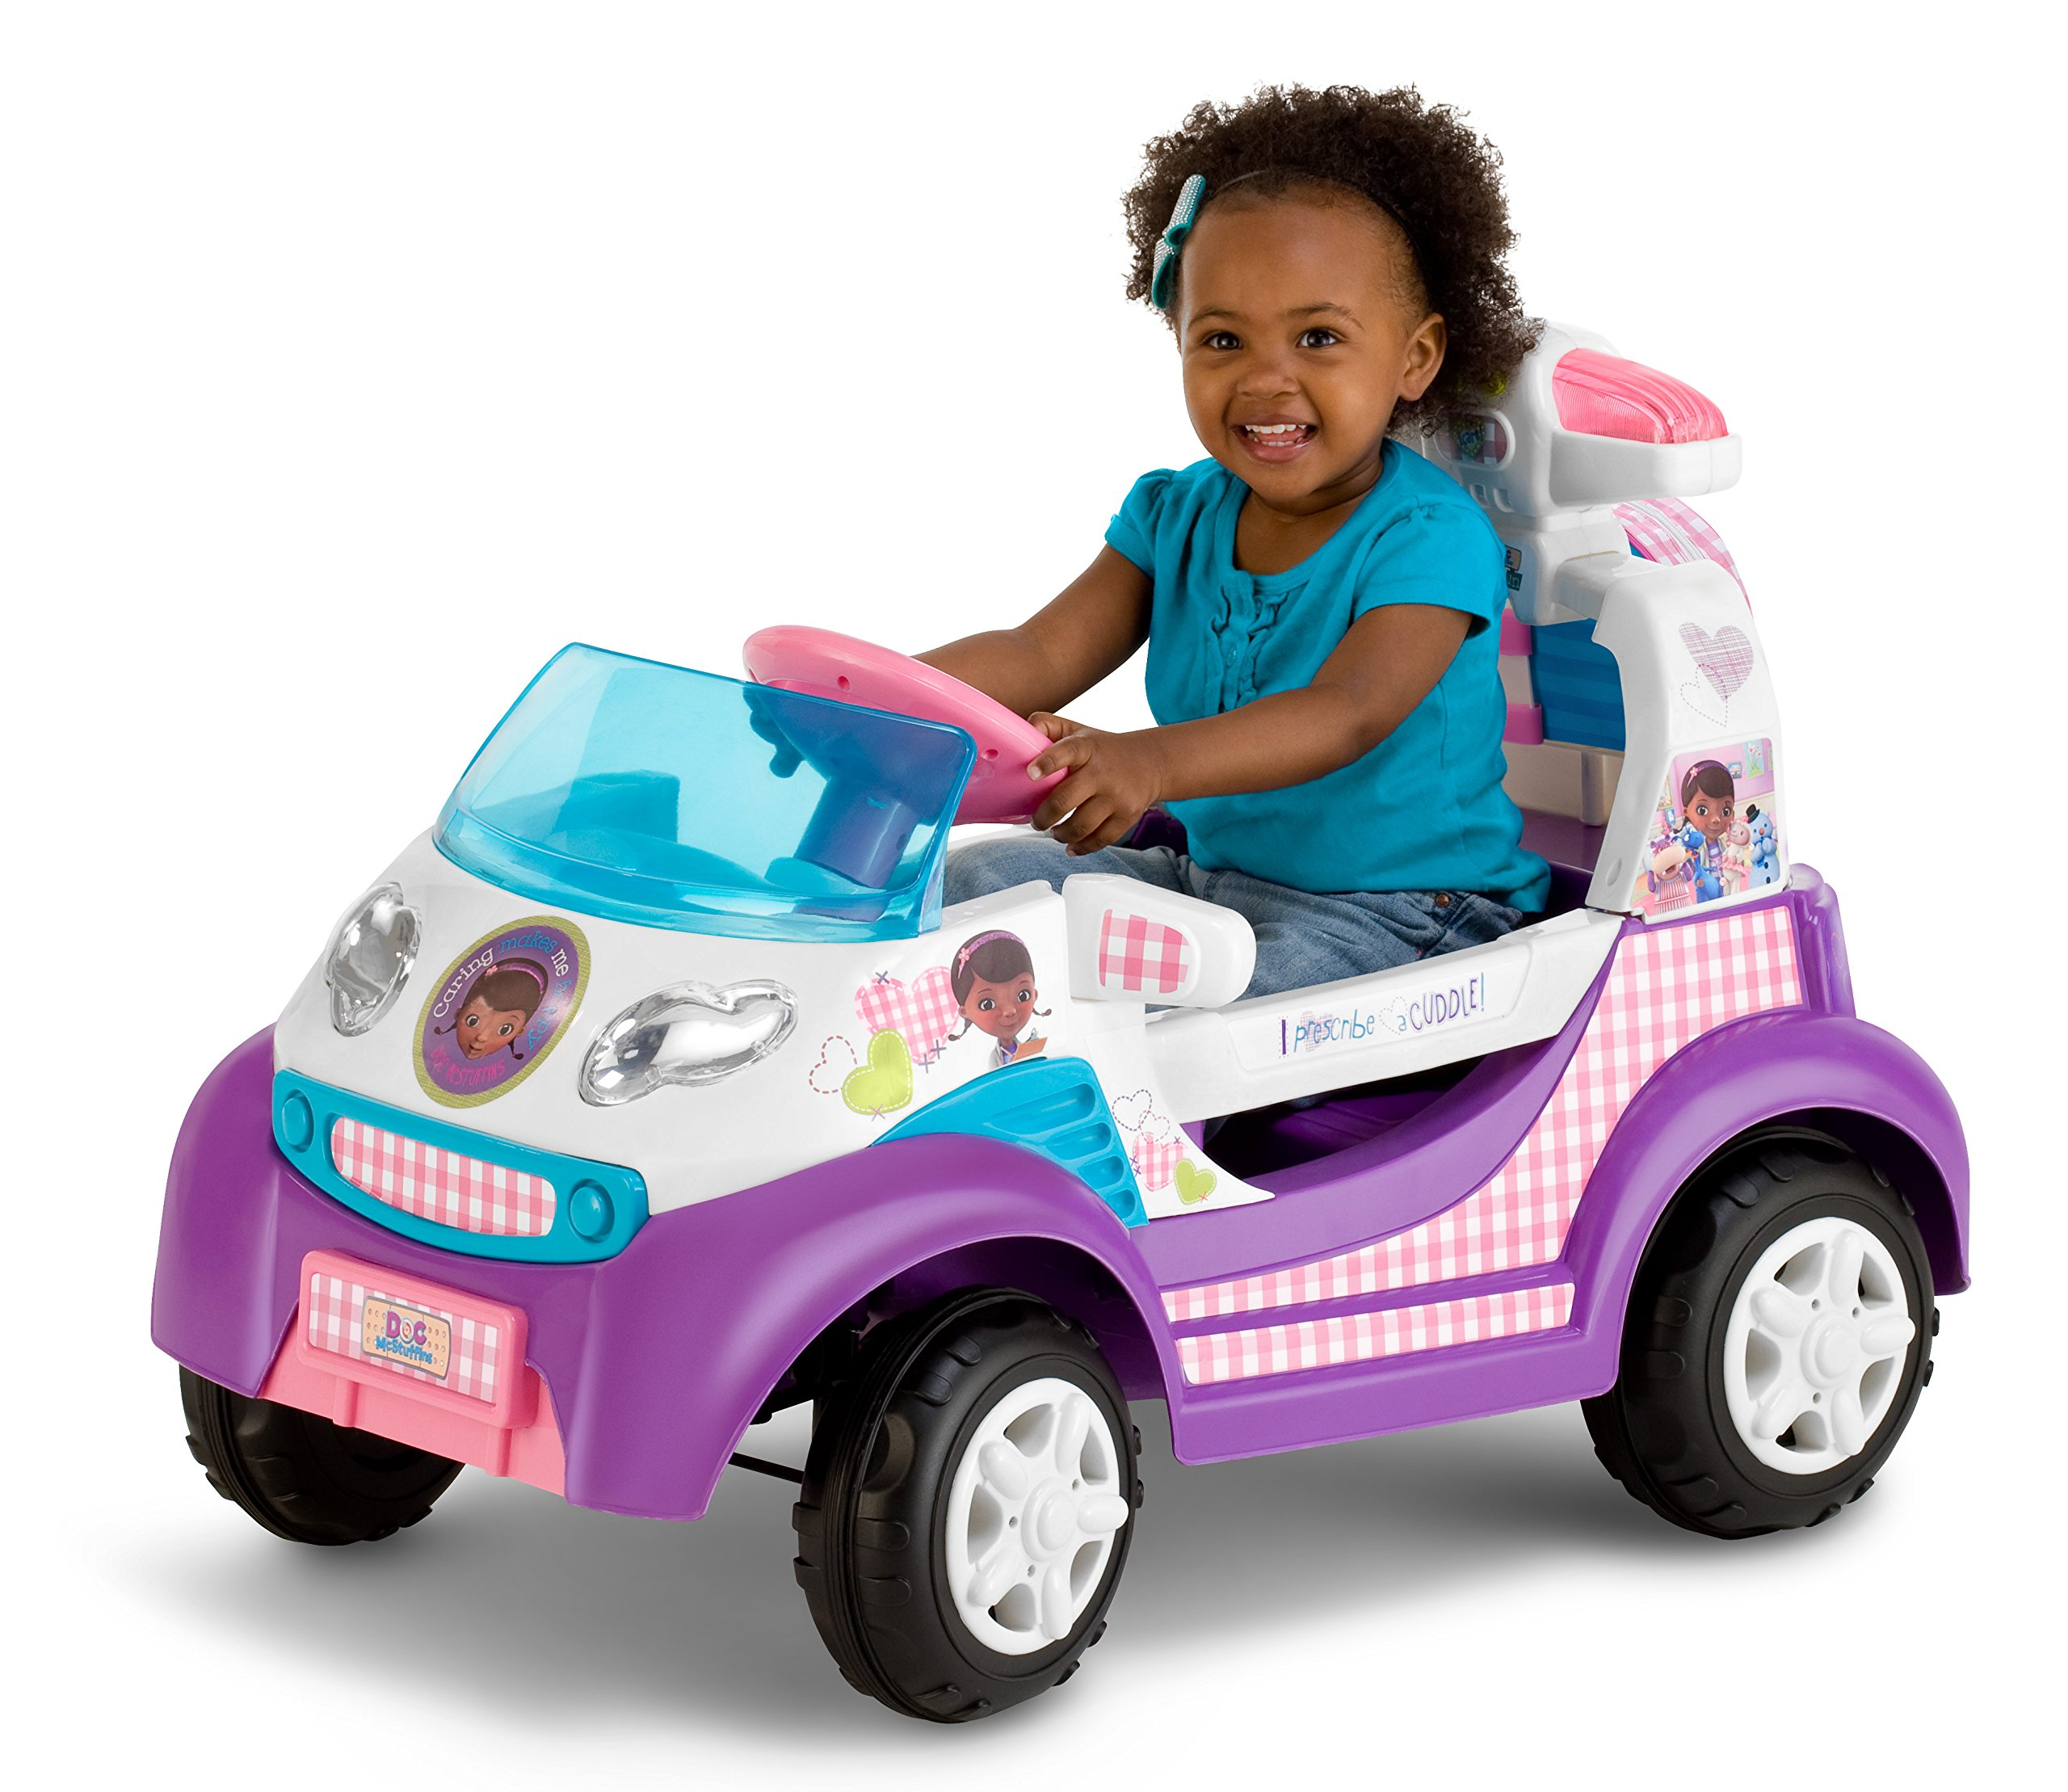 Kid Trax Doc McStuffins 6V Ambulance Ride On by Kid Trax (Image #2)